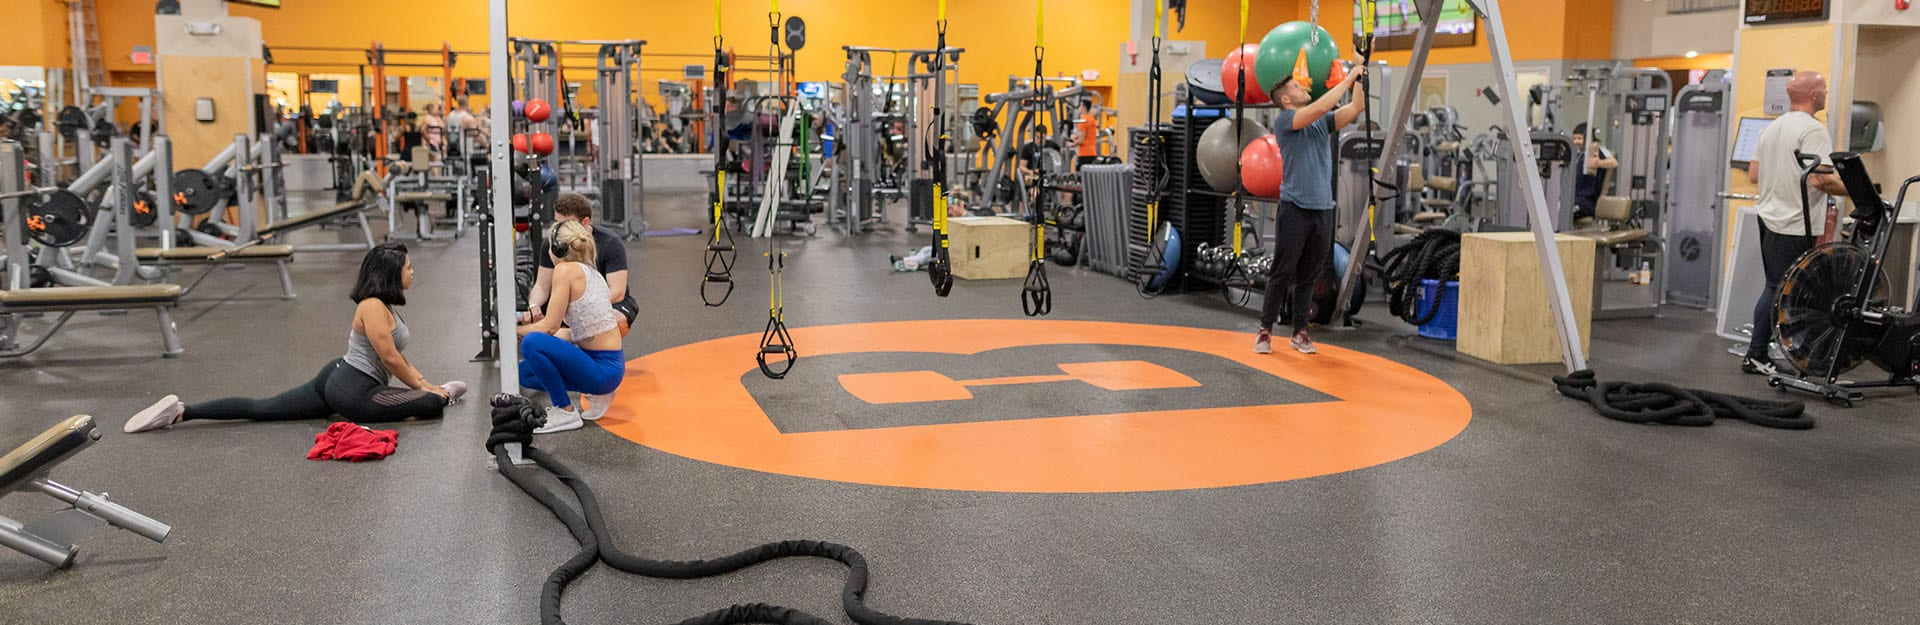 functional training equipment in modern spacious gym